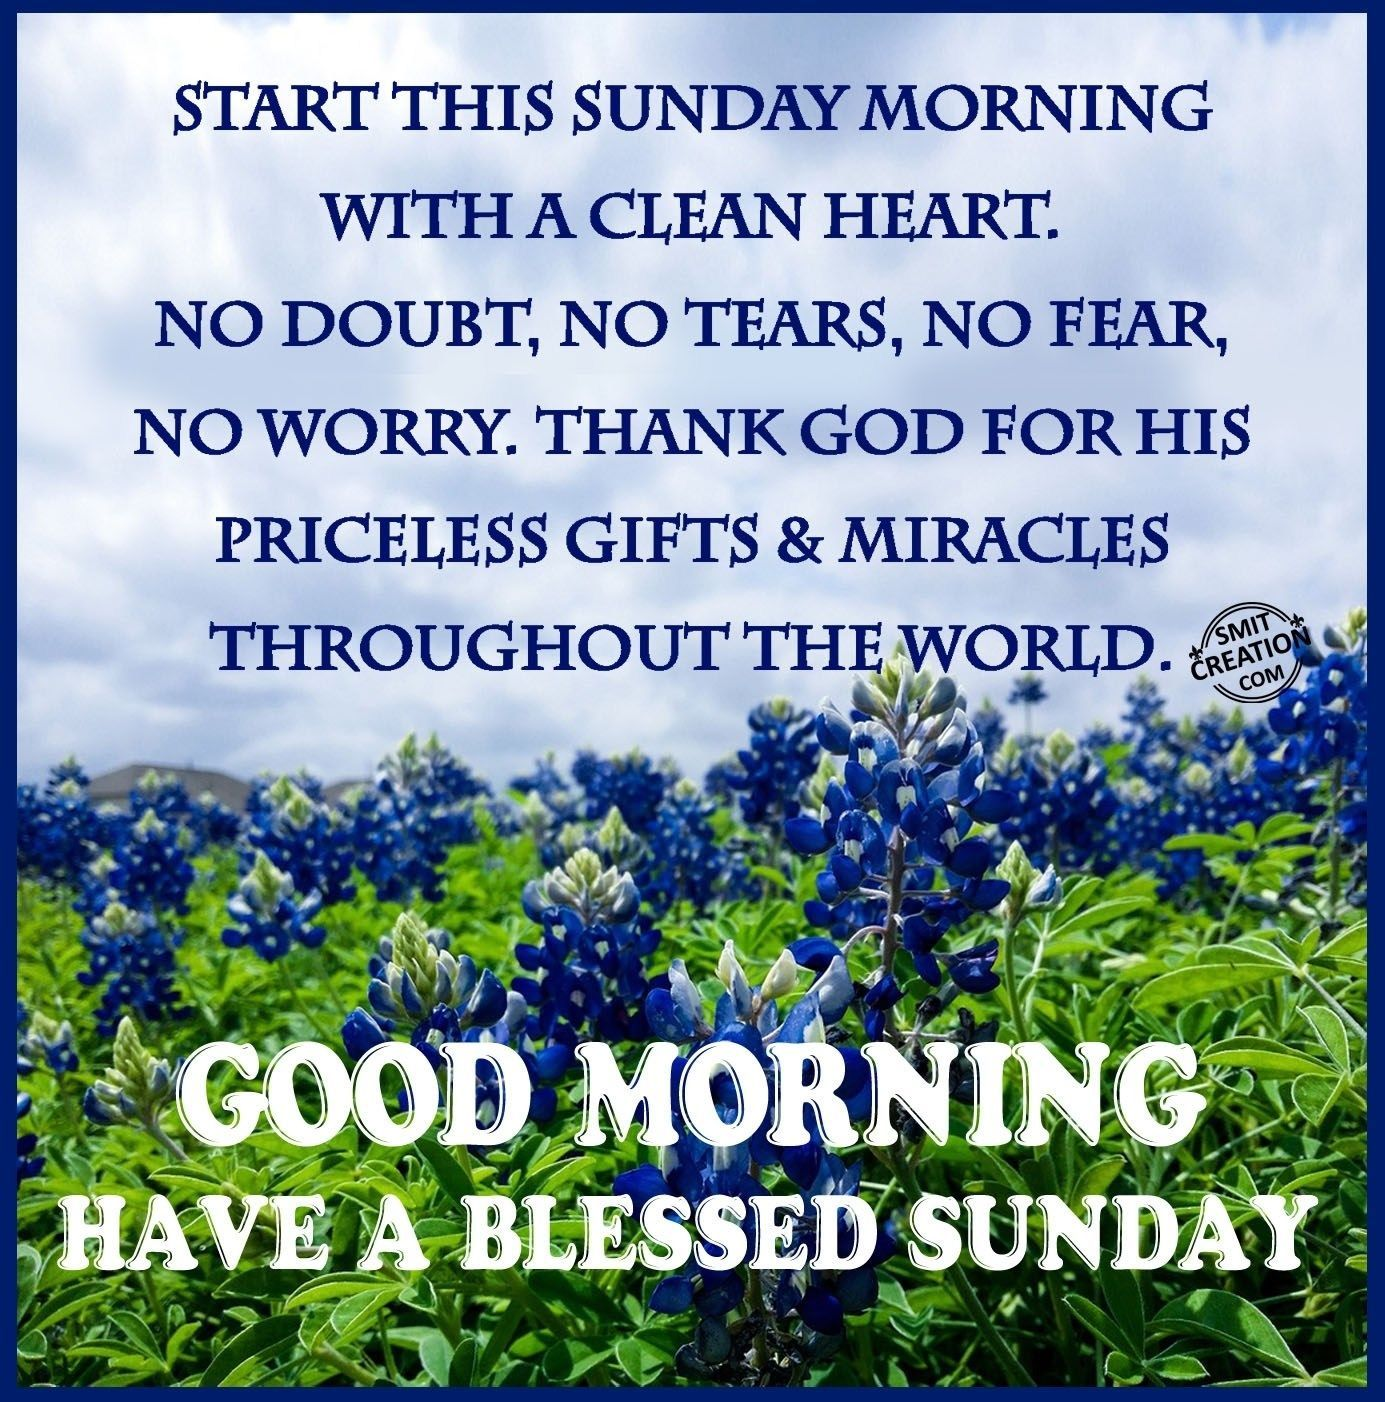 good morning have a blessed sunday good morning sunday sunday quotes good